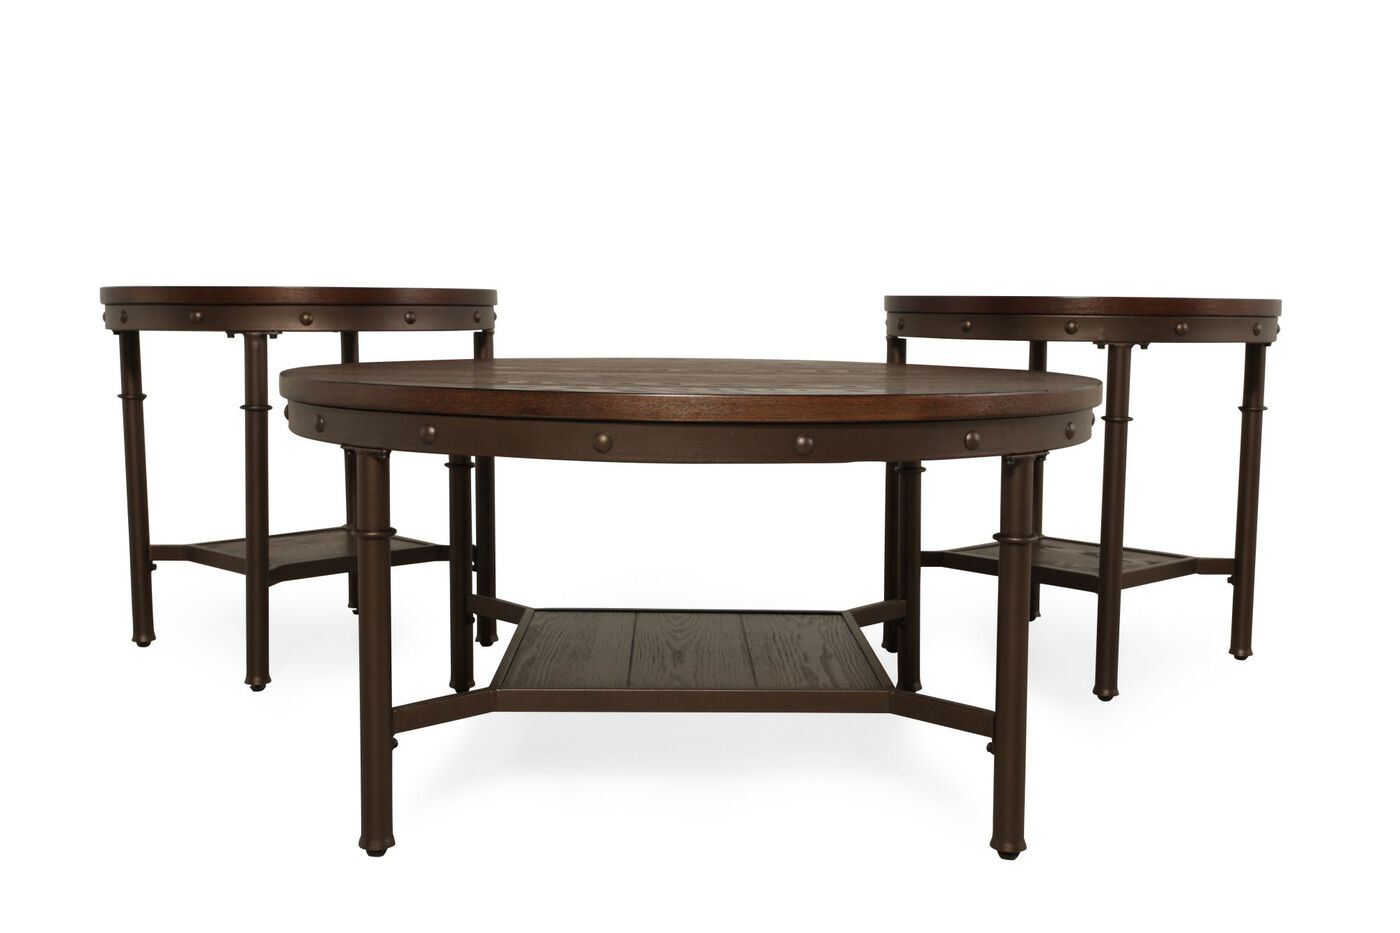 Three-Piece Rivet Accented Casual Coffee Table Set in Brown | Mathis ...